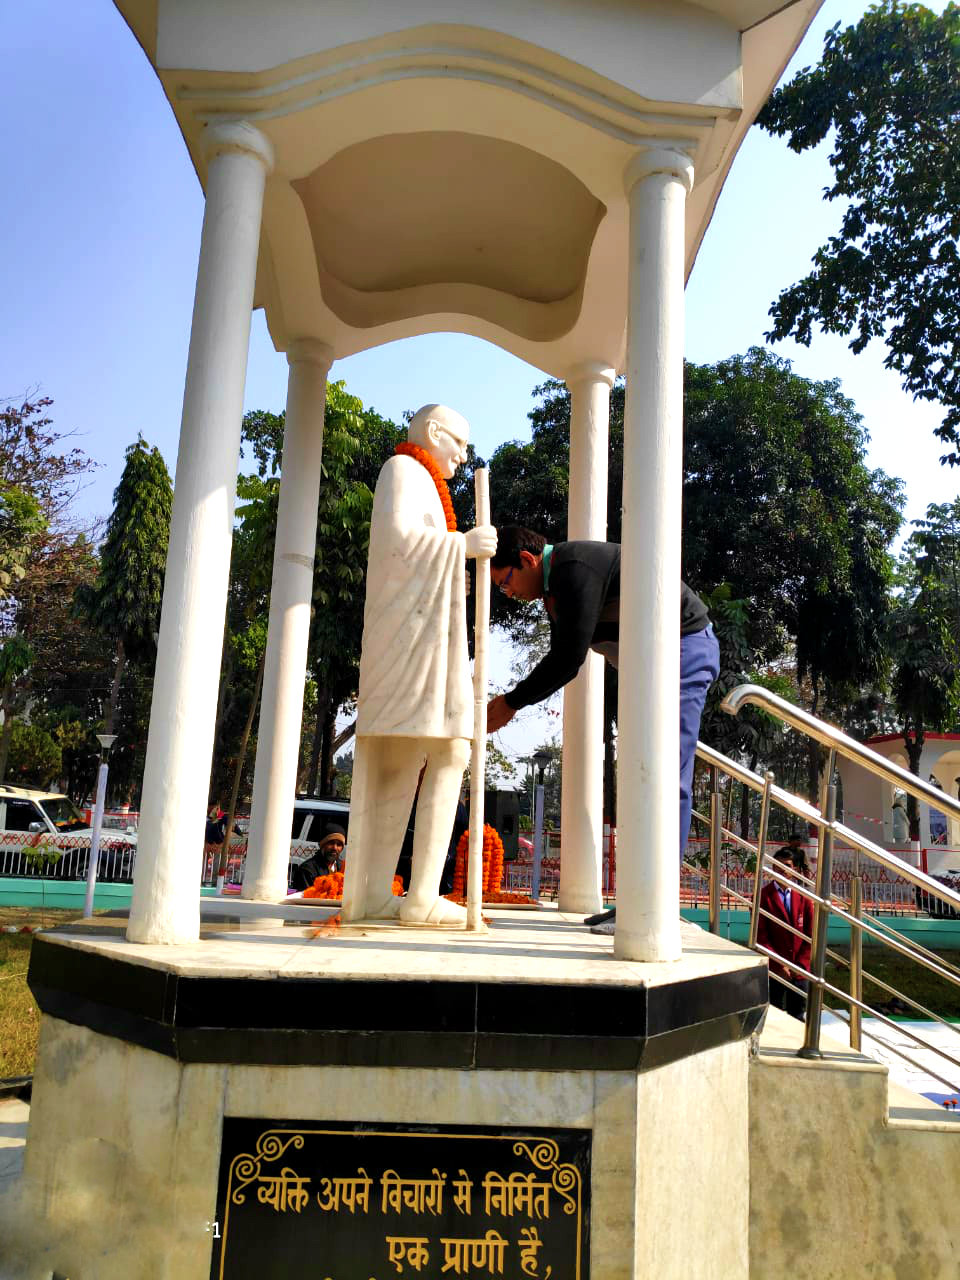 DM Navdeep Shukla paying tribute to Rashtrapita Mahatma Gandhi on Shahid Diwas at Samaharnalaya Madhepura .